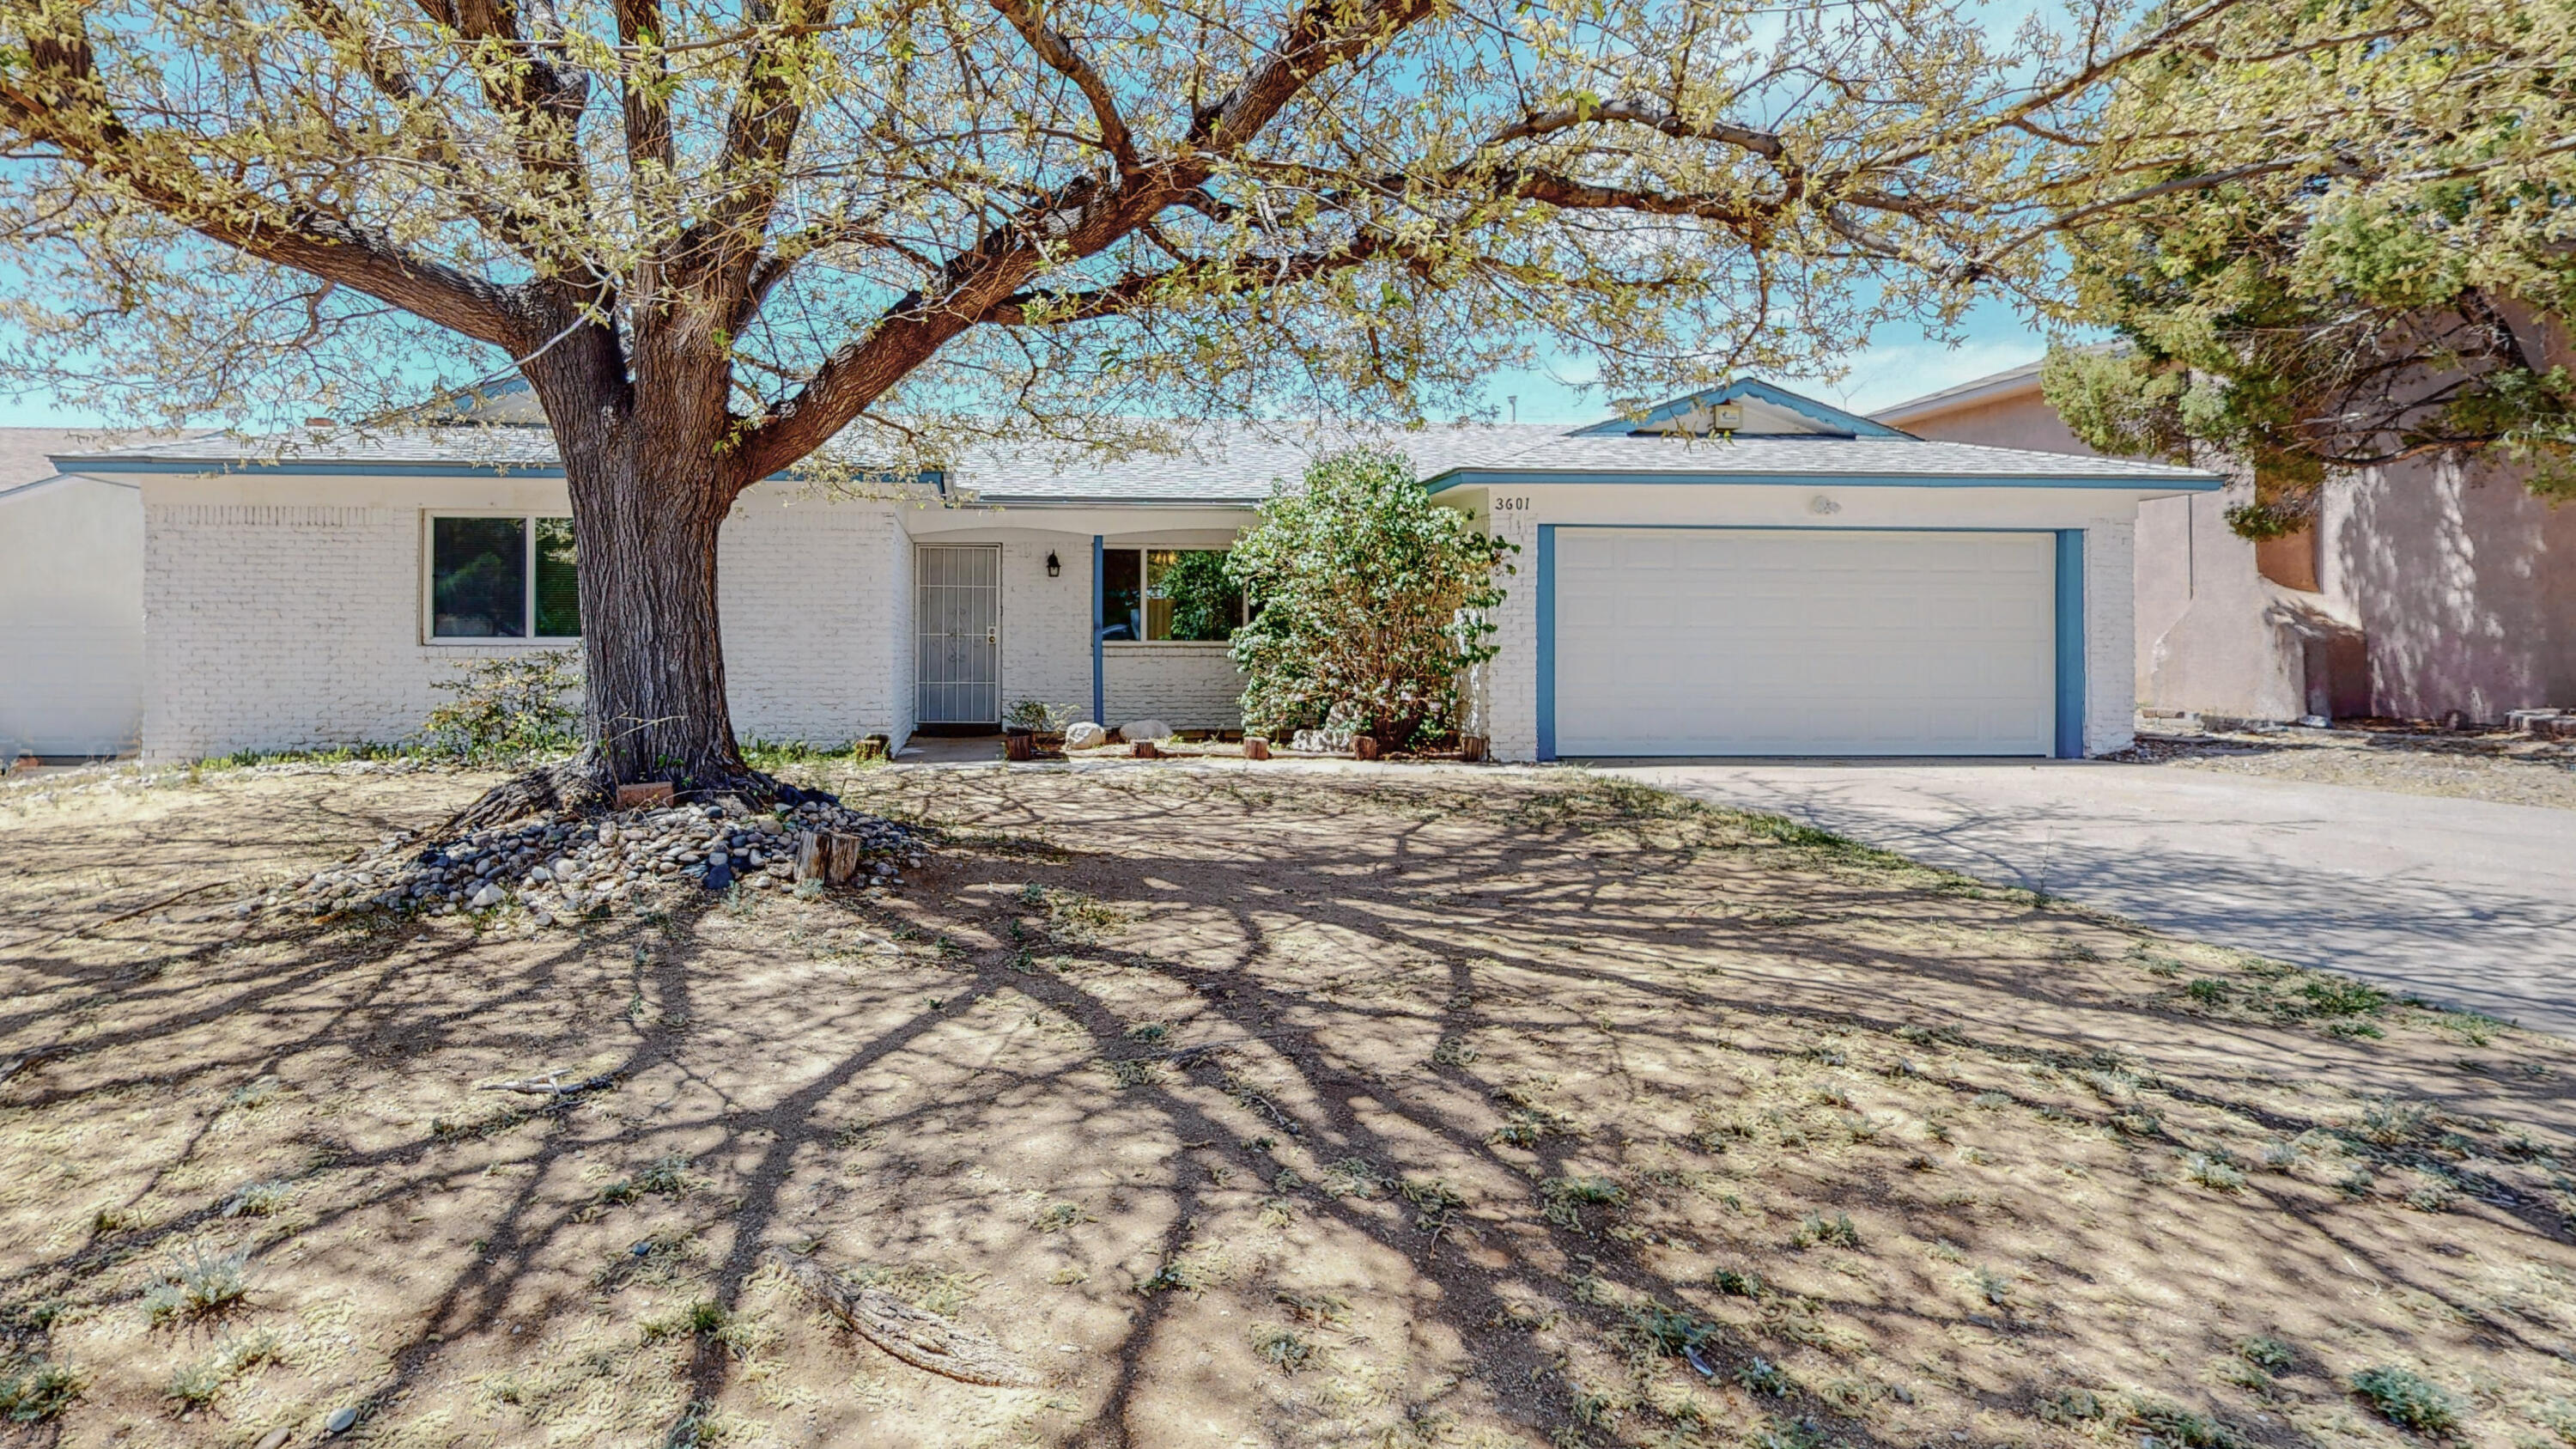 Highly sought after Holiday Park neighborhood. If you enjoy the outdoors, Piedra Lisa Canyon Trail is just minutes away. Have kids? Well this home is located in one of the best school districts in ABQ. John Baker Elementary and Hoover Middle school is just a walk out the backyard gate. This home is approx. 2,352sqft w/3 living areas and 4 generous sized bedrooms. Great for a large or extended family or maybe you're looking for a home to spread out in.The huge family room right off the kitchen is perfect for gatherings and entertaining. Travertine tile in front entry hallway, kitchen and laundry room. Kitchen and bathrooms updated in 2015. Furnace and MasterCool A/C less than 10yrs old. Garage door and opener 2019. NEW ROOF 2021 w/transferable warranty. Schedule a showing now